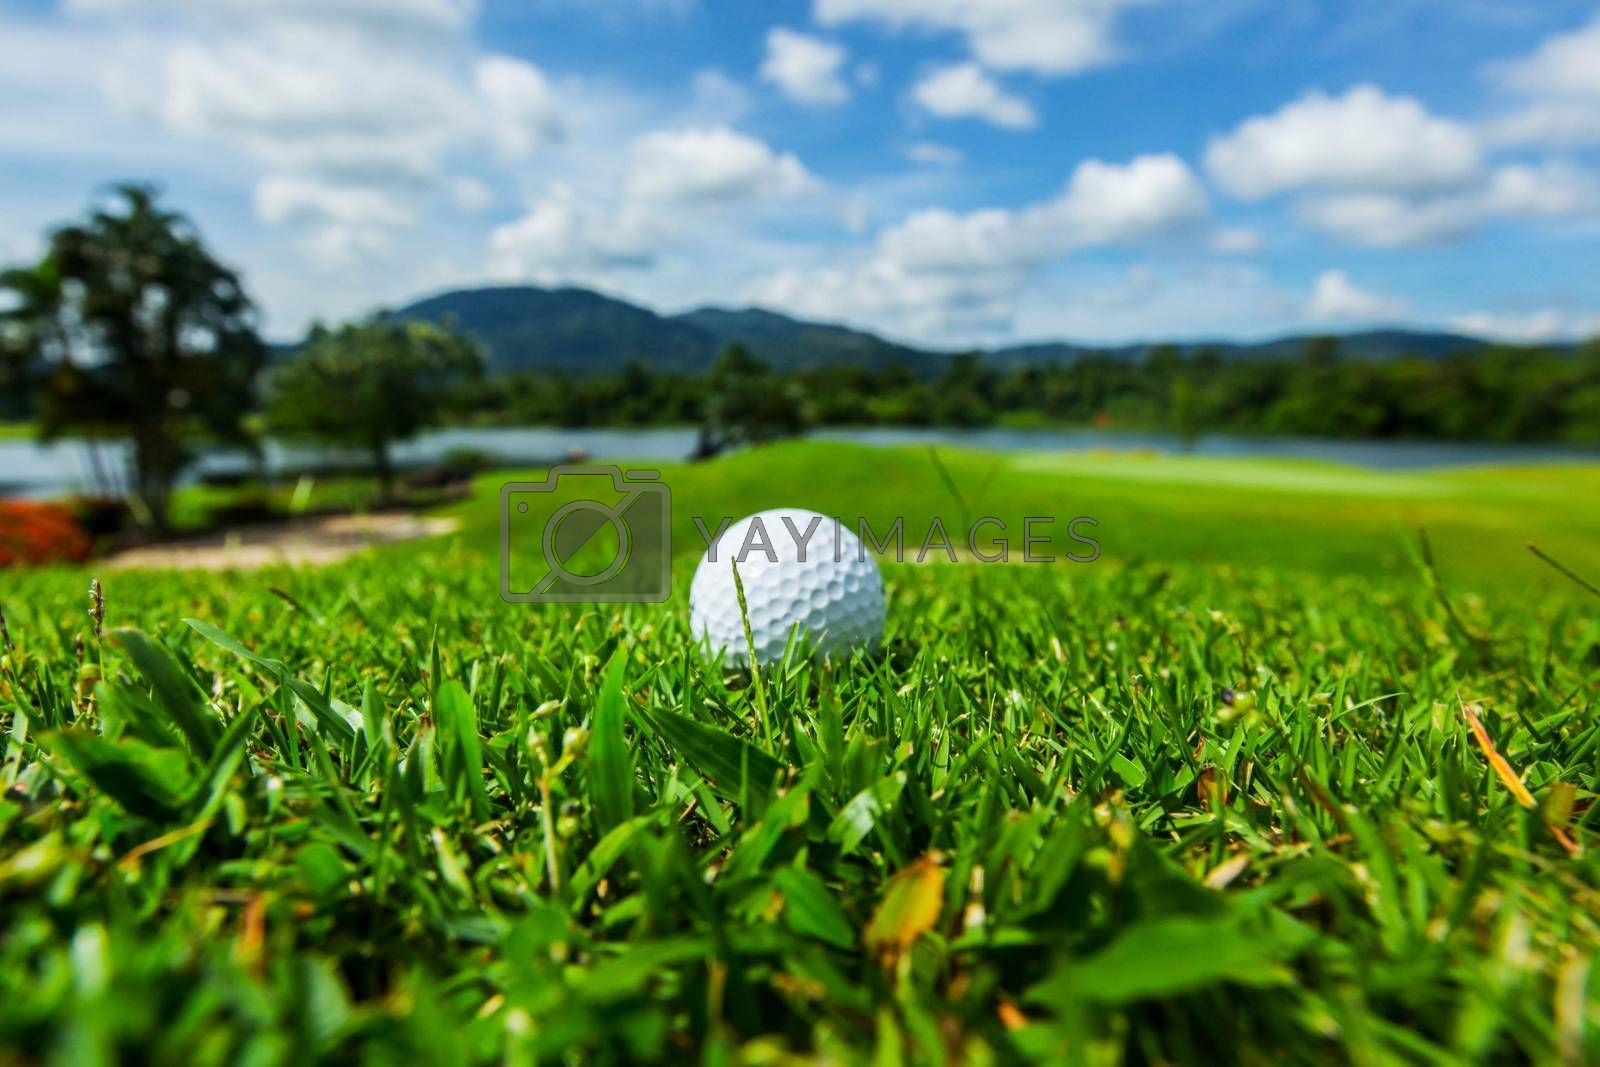 Royalty free image of Golf ball on course by Yellowj